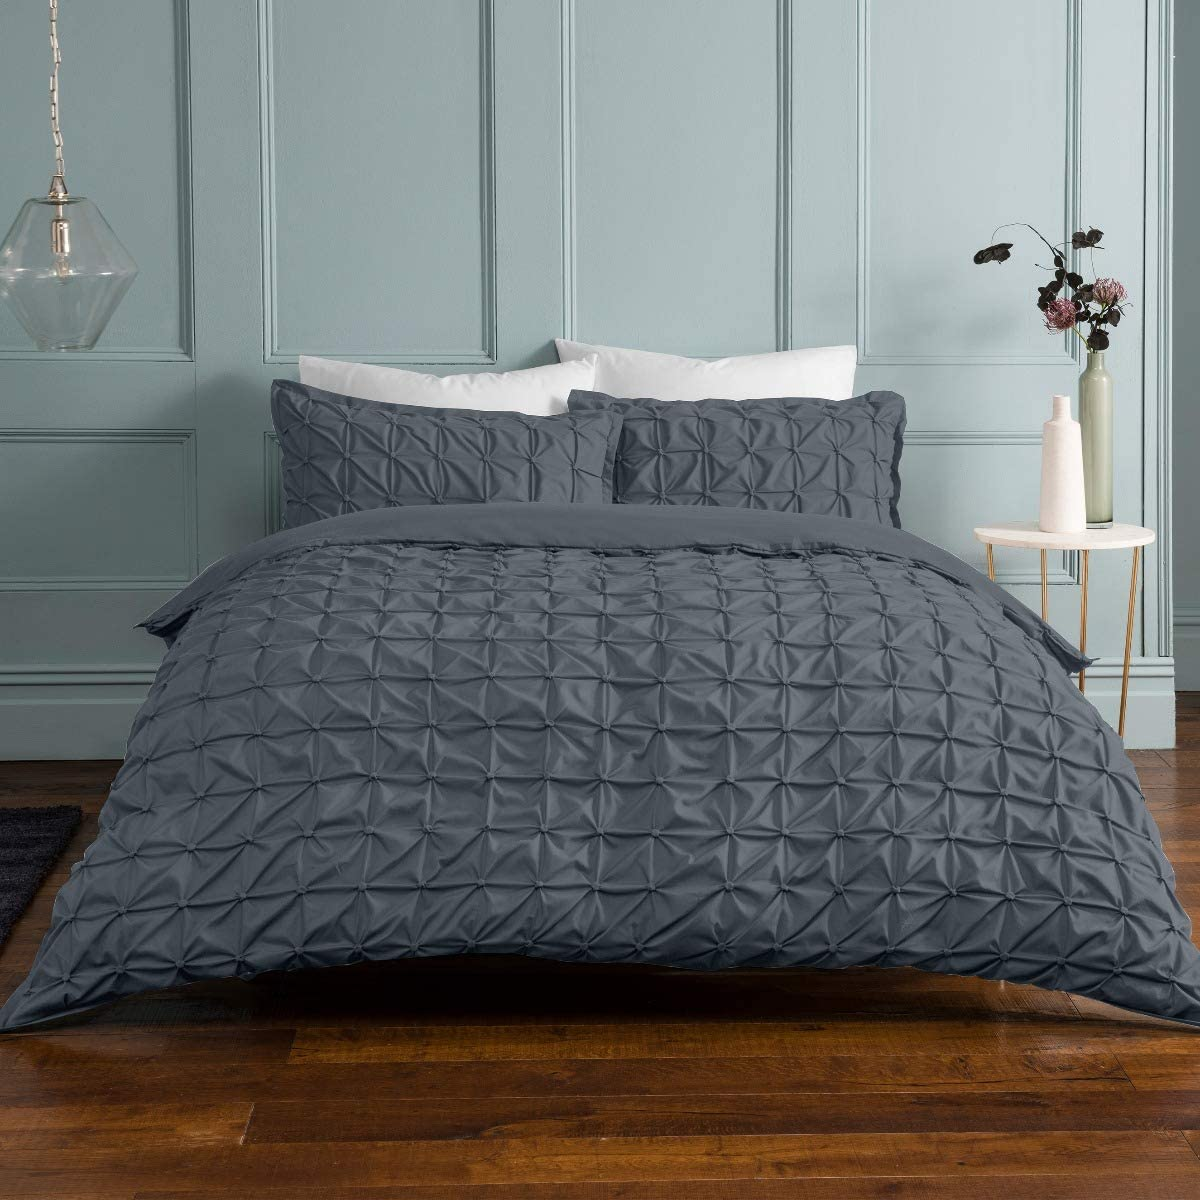 Sleepdown Rouched Pleats Charcoal Bedding Set with Pillowcases – Double (200cm x 200cm) 47% OFF £16.55 @ Amazon